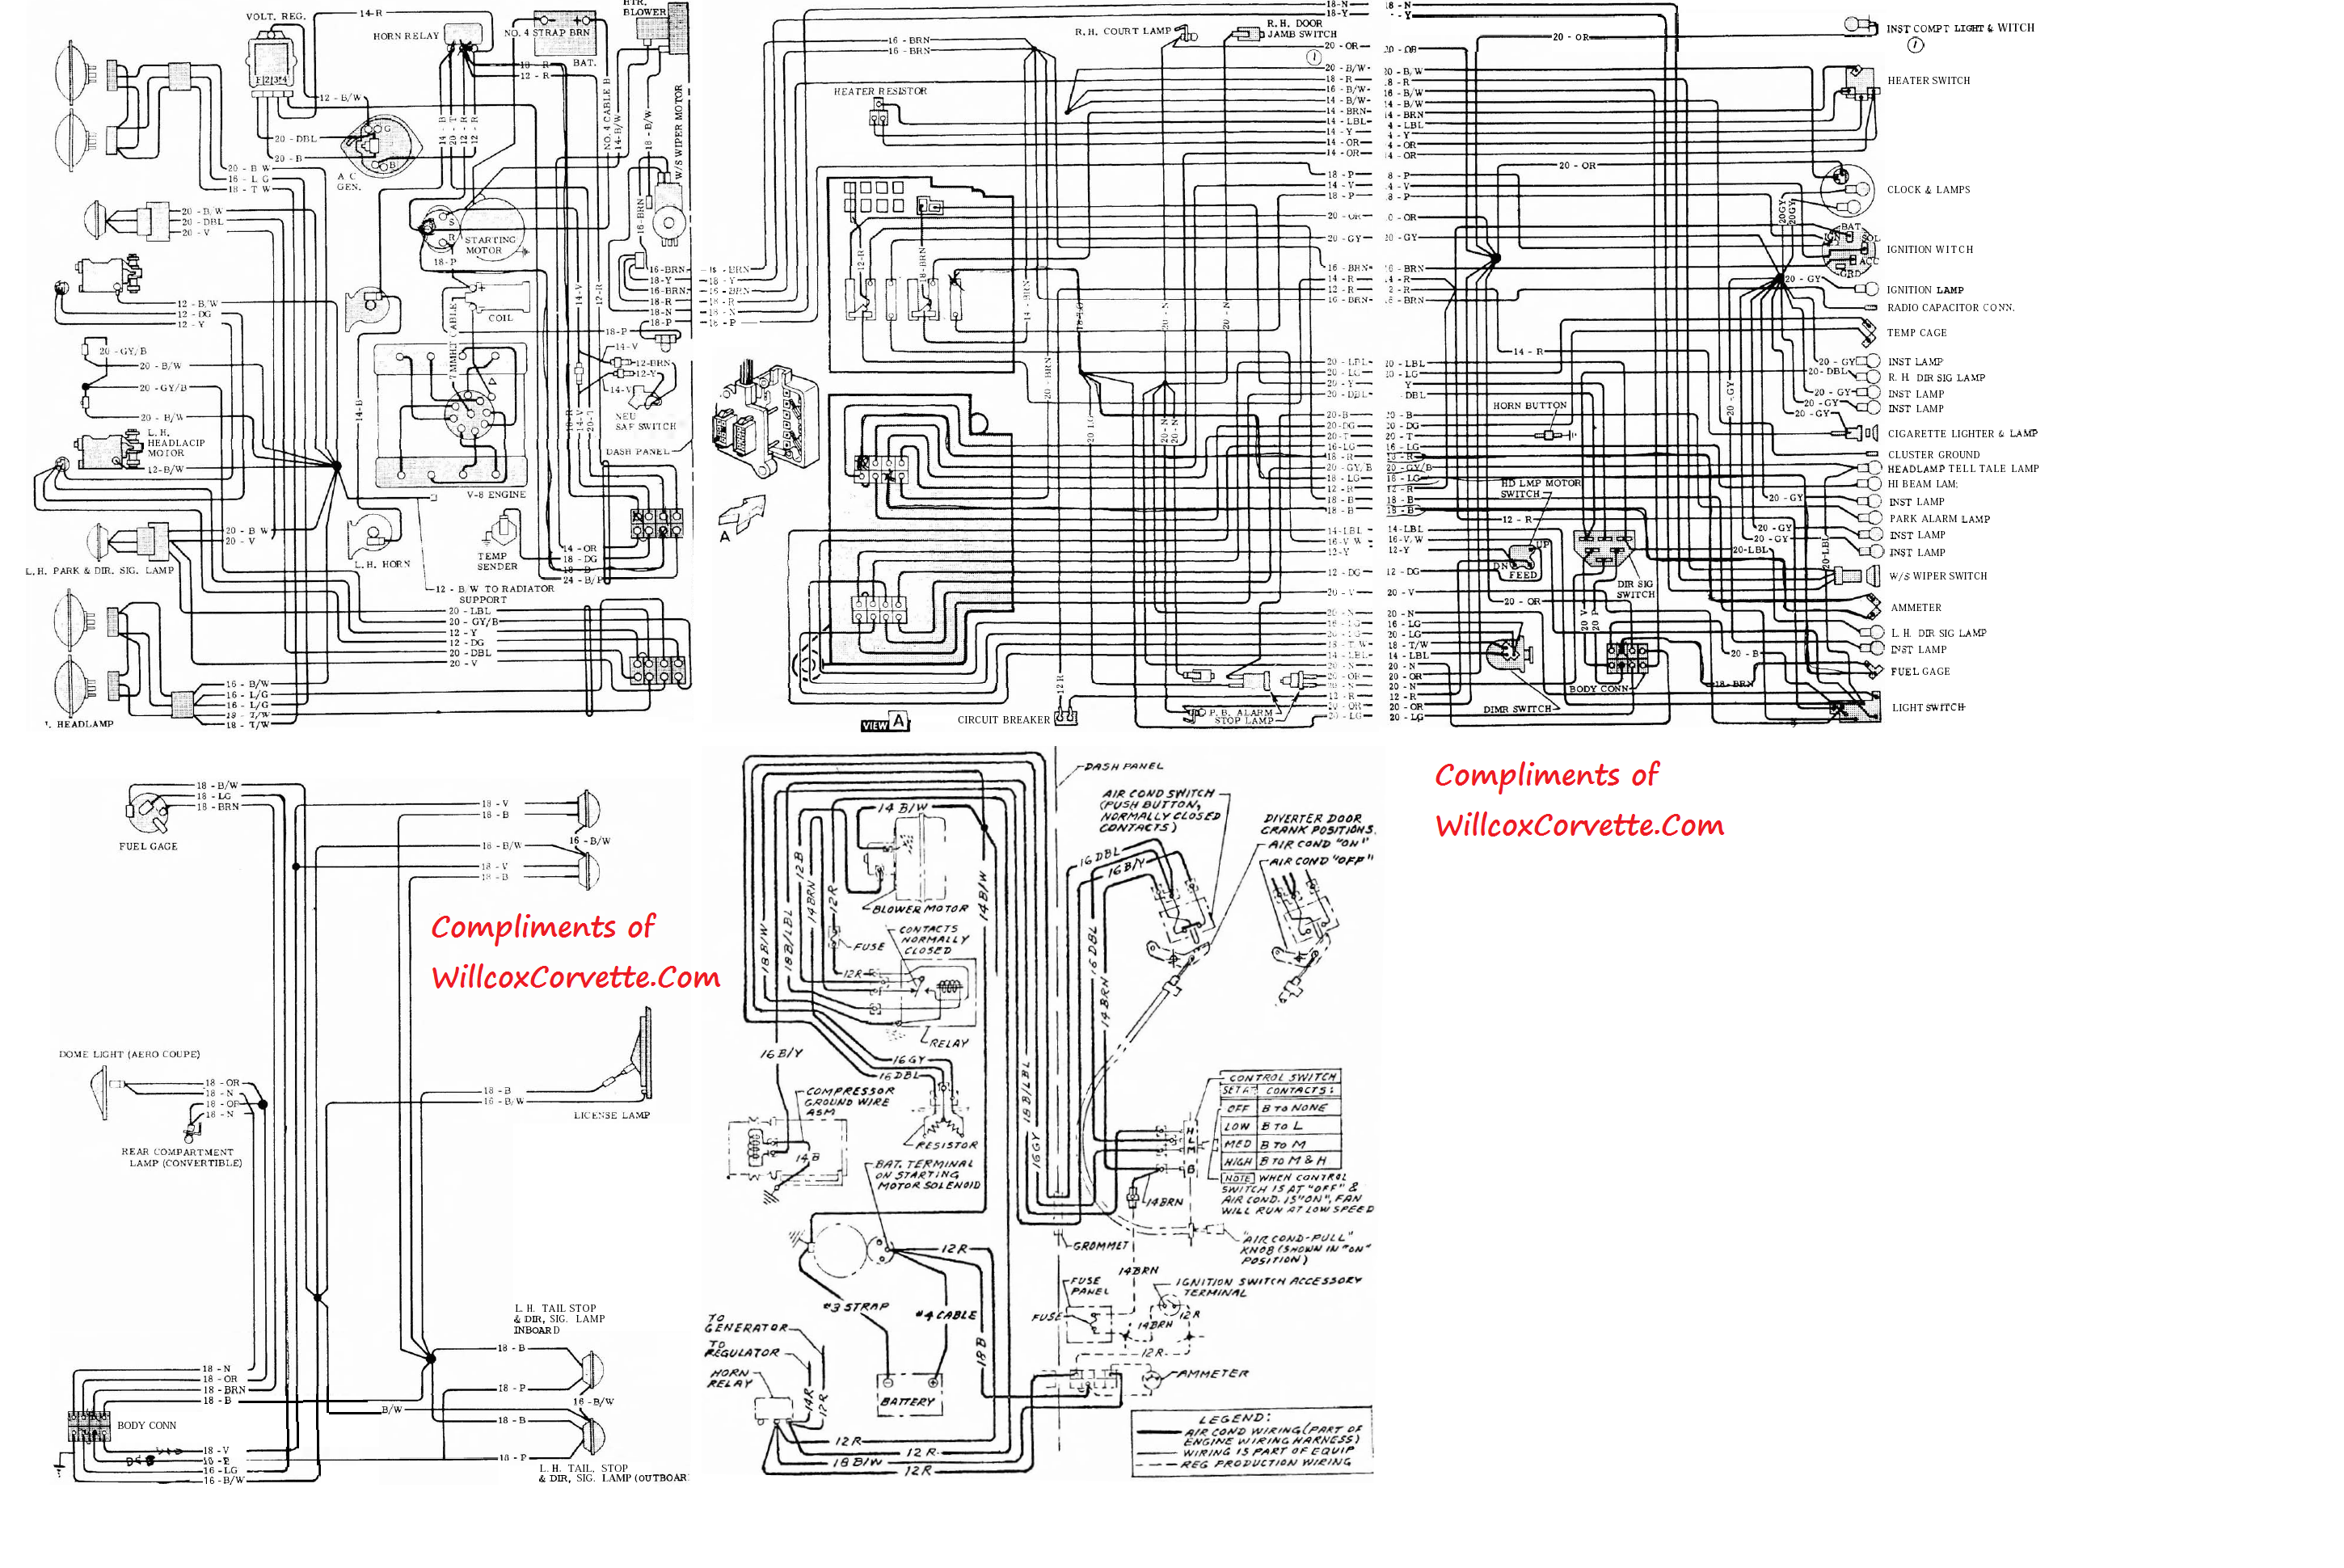 1963 Corvette Tracer Wiring Diagram Tracer Schematic 1963 corvette tracer wiring diagram tracer schematic willcox 1980 corvette wiring schematics at panicattacktreatment.co